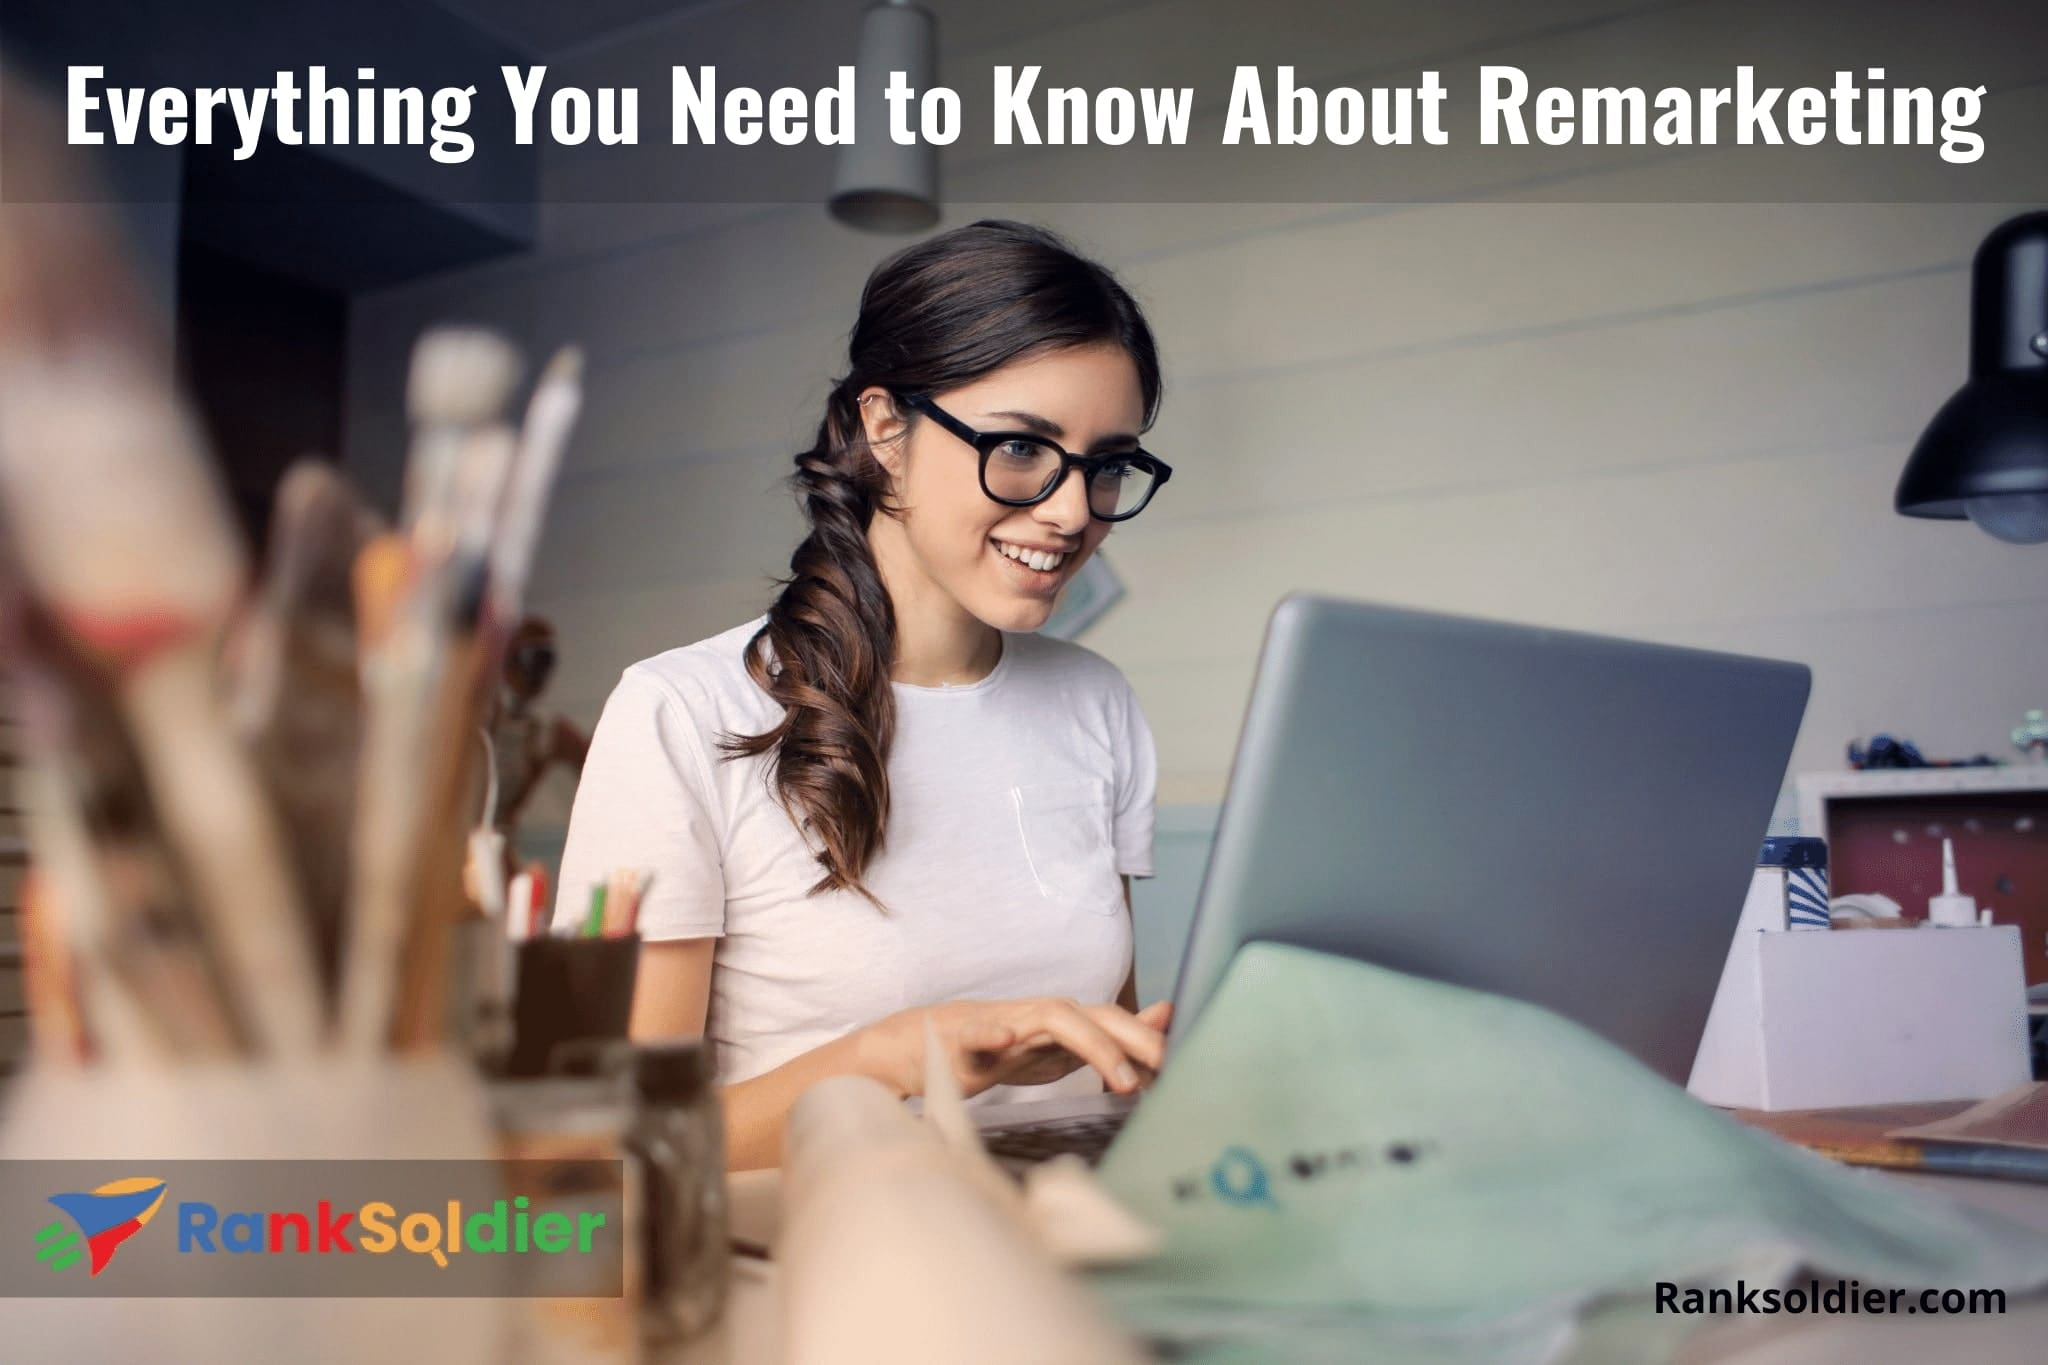 Everything You Need to Know About Remarketing